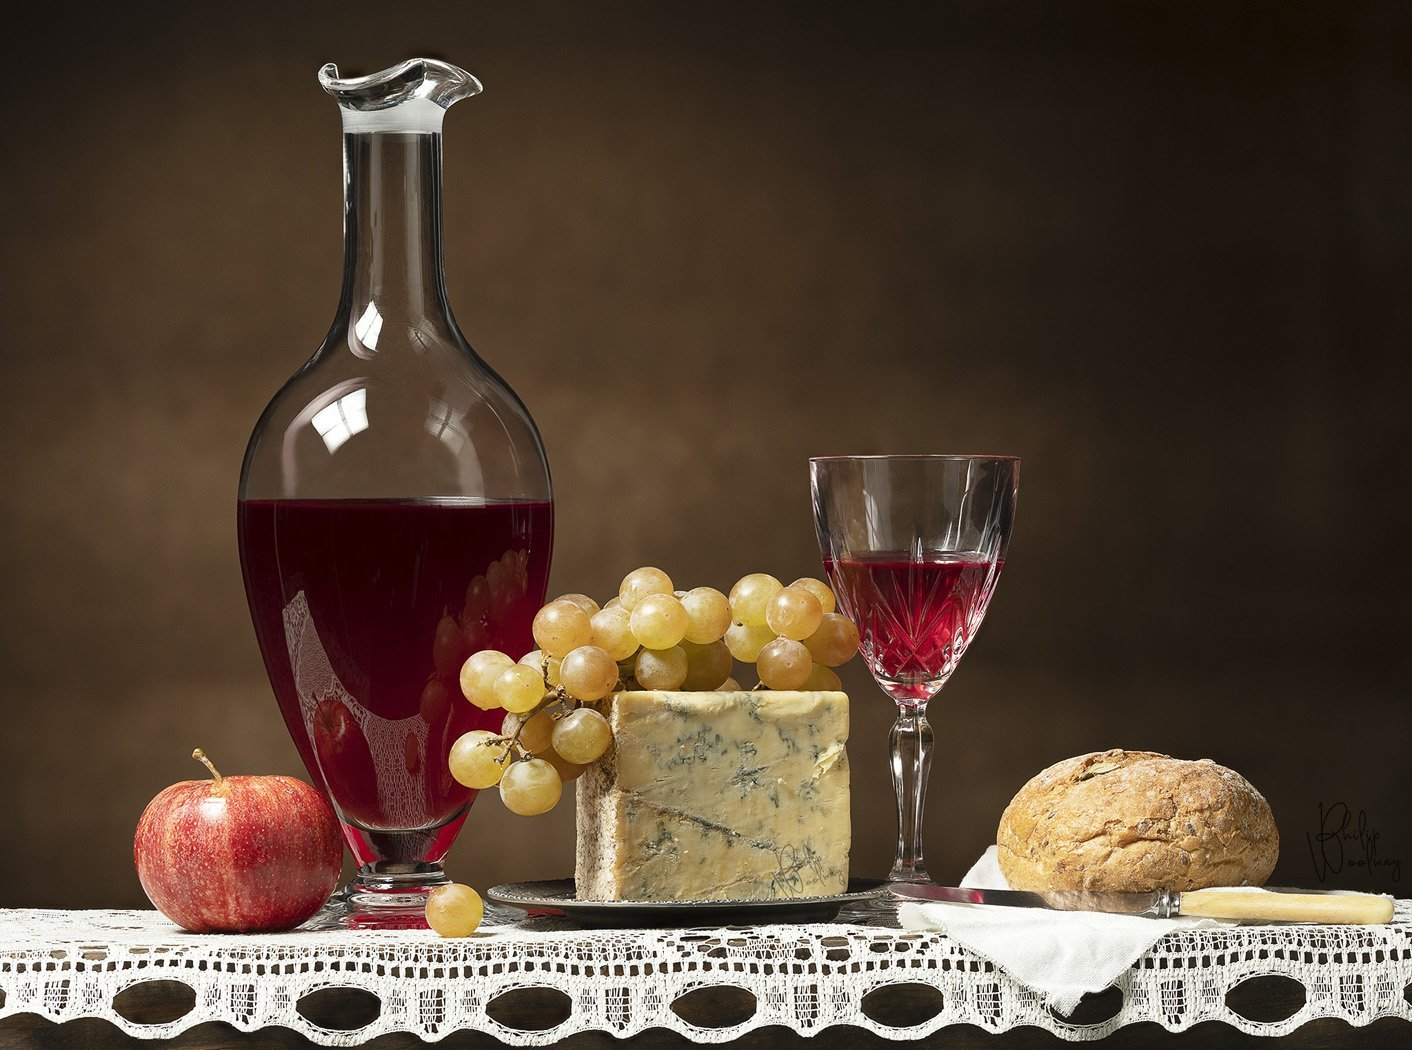 Red Wine, Stilton Blue Cheese and Muscat Grapes, a perfect combination